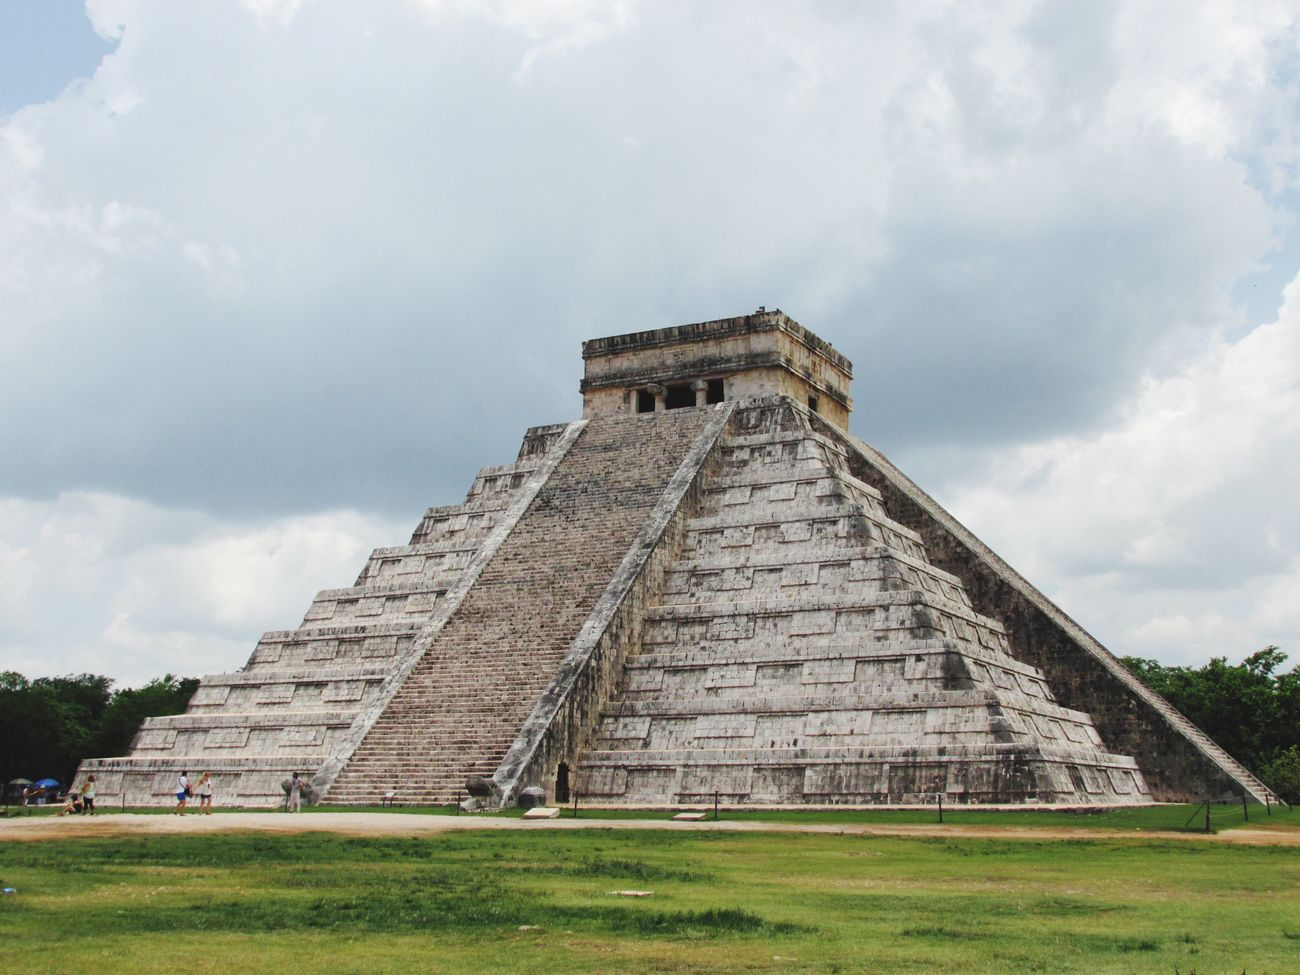 Chichen Itza Yucatan Mexico Beautiful Piramide Zona Arqueológica Zona Maya 2016 Freshness Mexico Vianeycarre Incredible